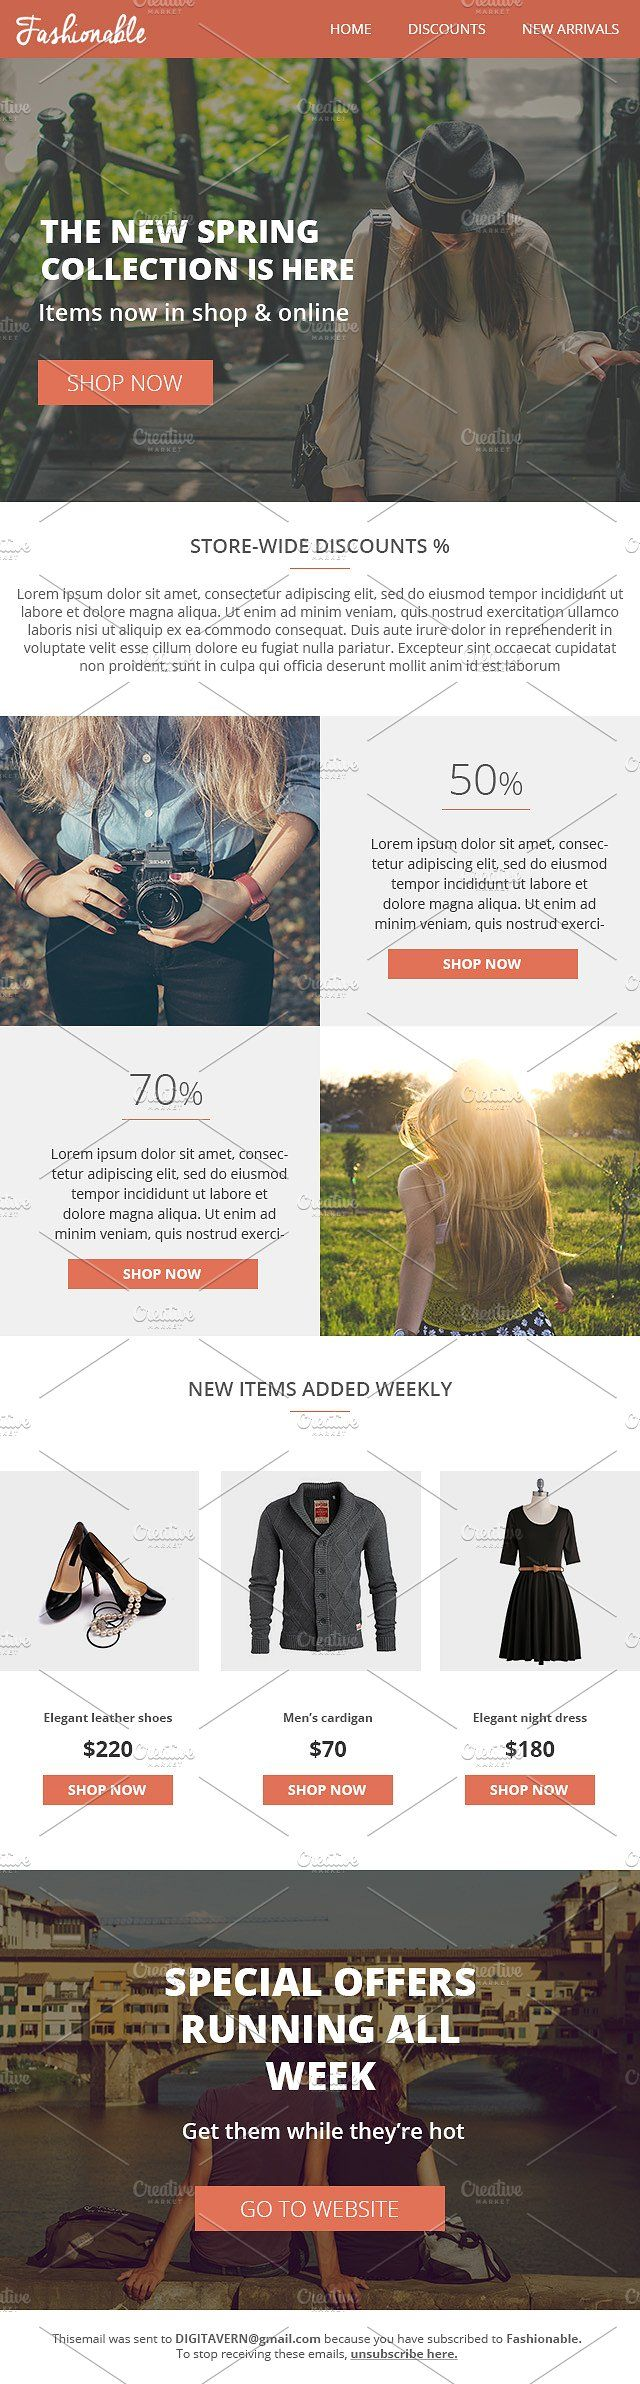 Fashionable Responsive Email Builder by VectorBurn on @creativemarket